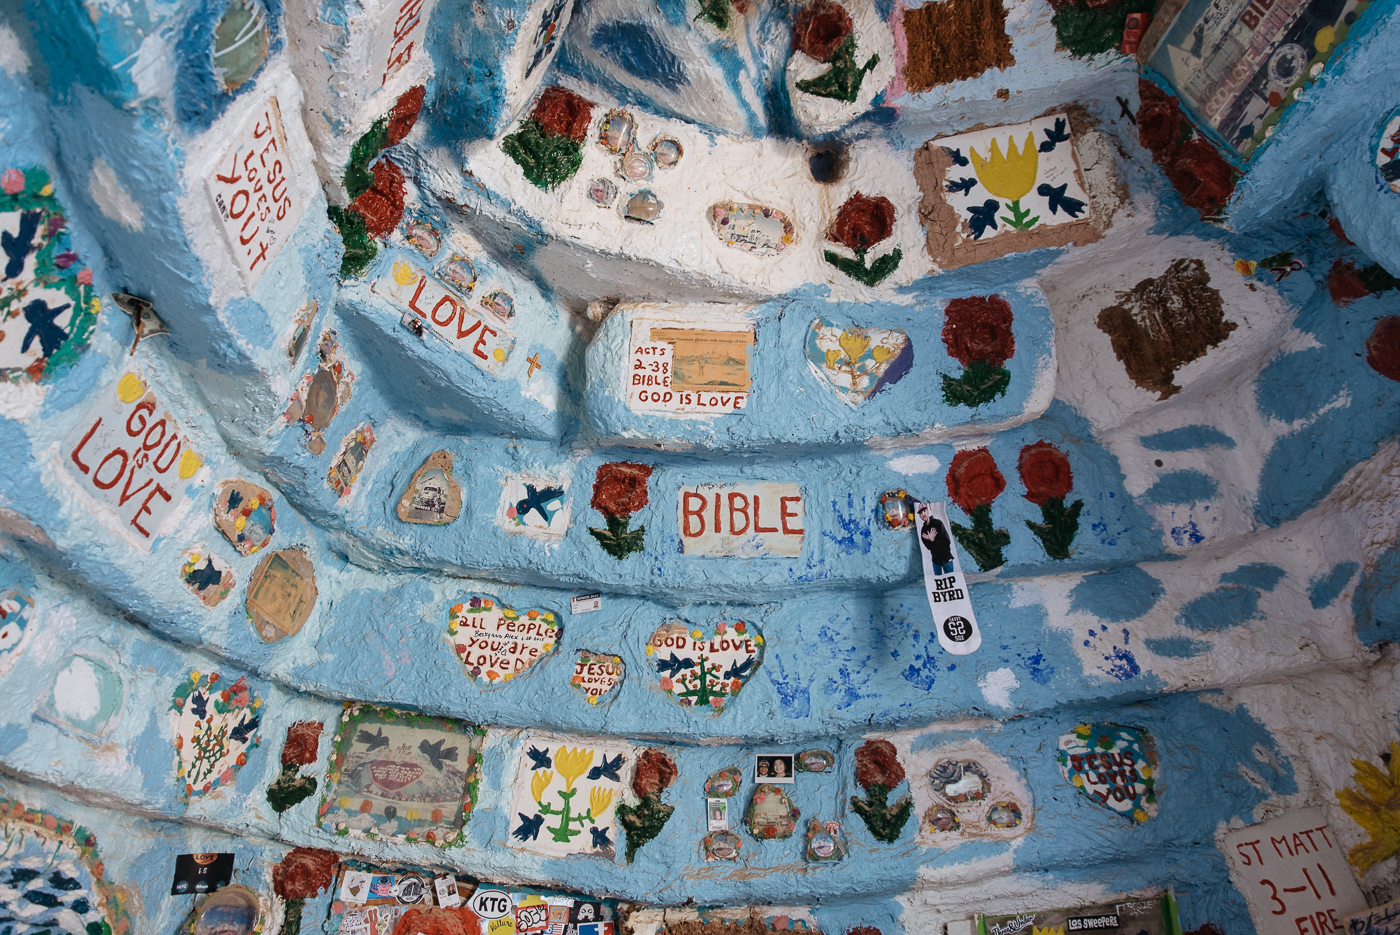 salvation mountain california arizona slab city salton sea vsco nikon america yall pawlowski americayall painting